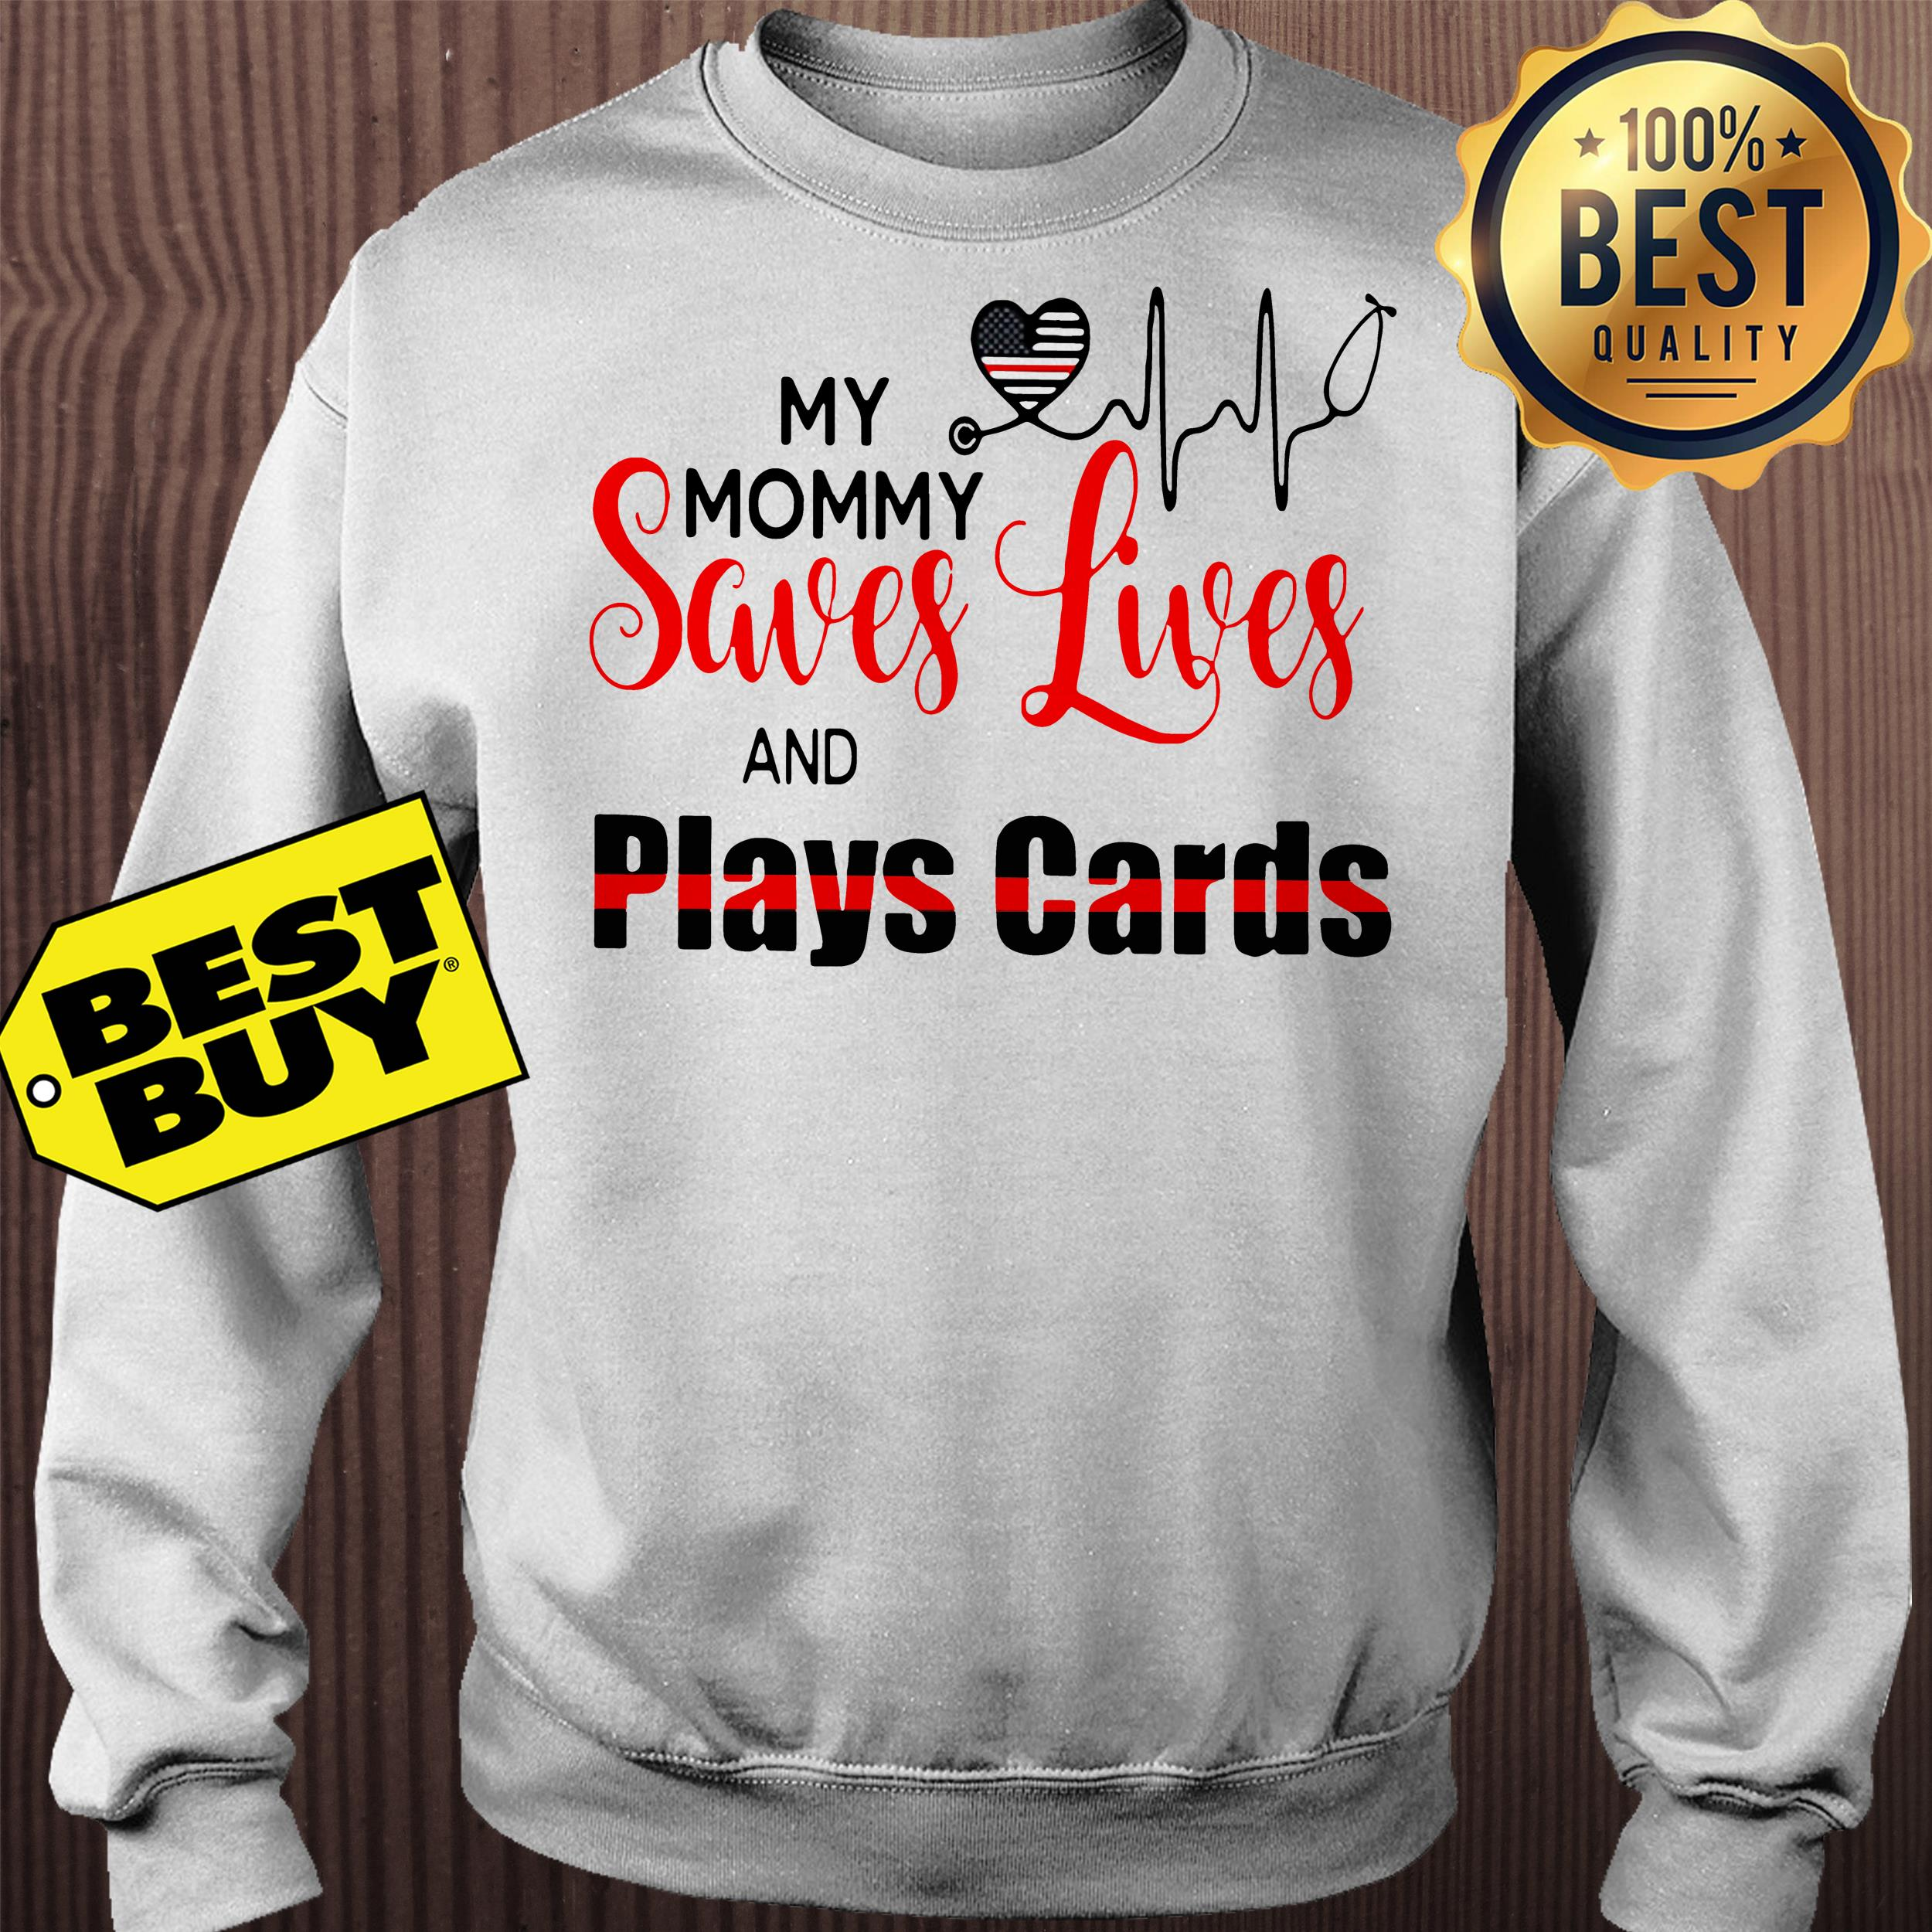 My Mommy Saves Lives And Plays Cards Sweatshirt